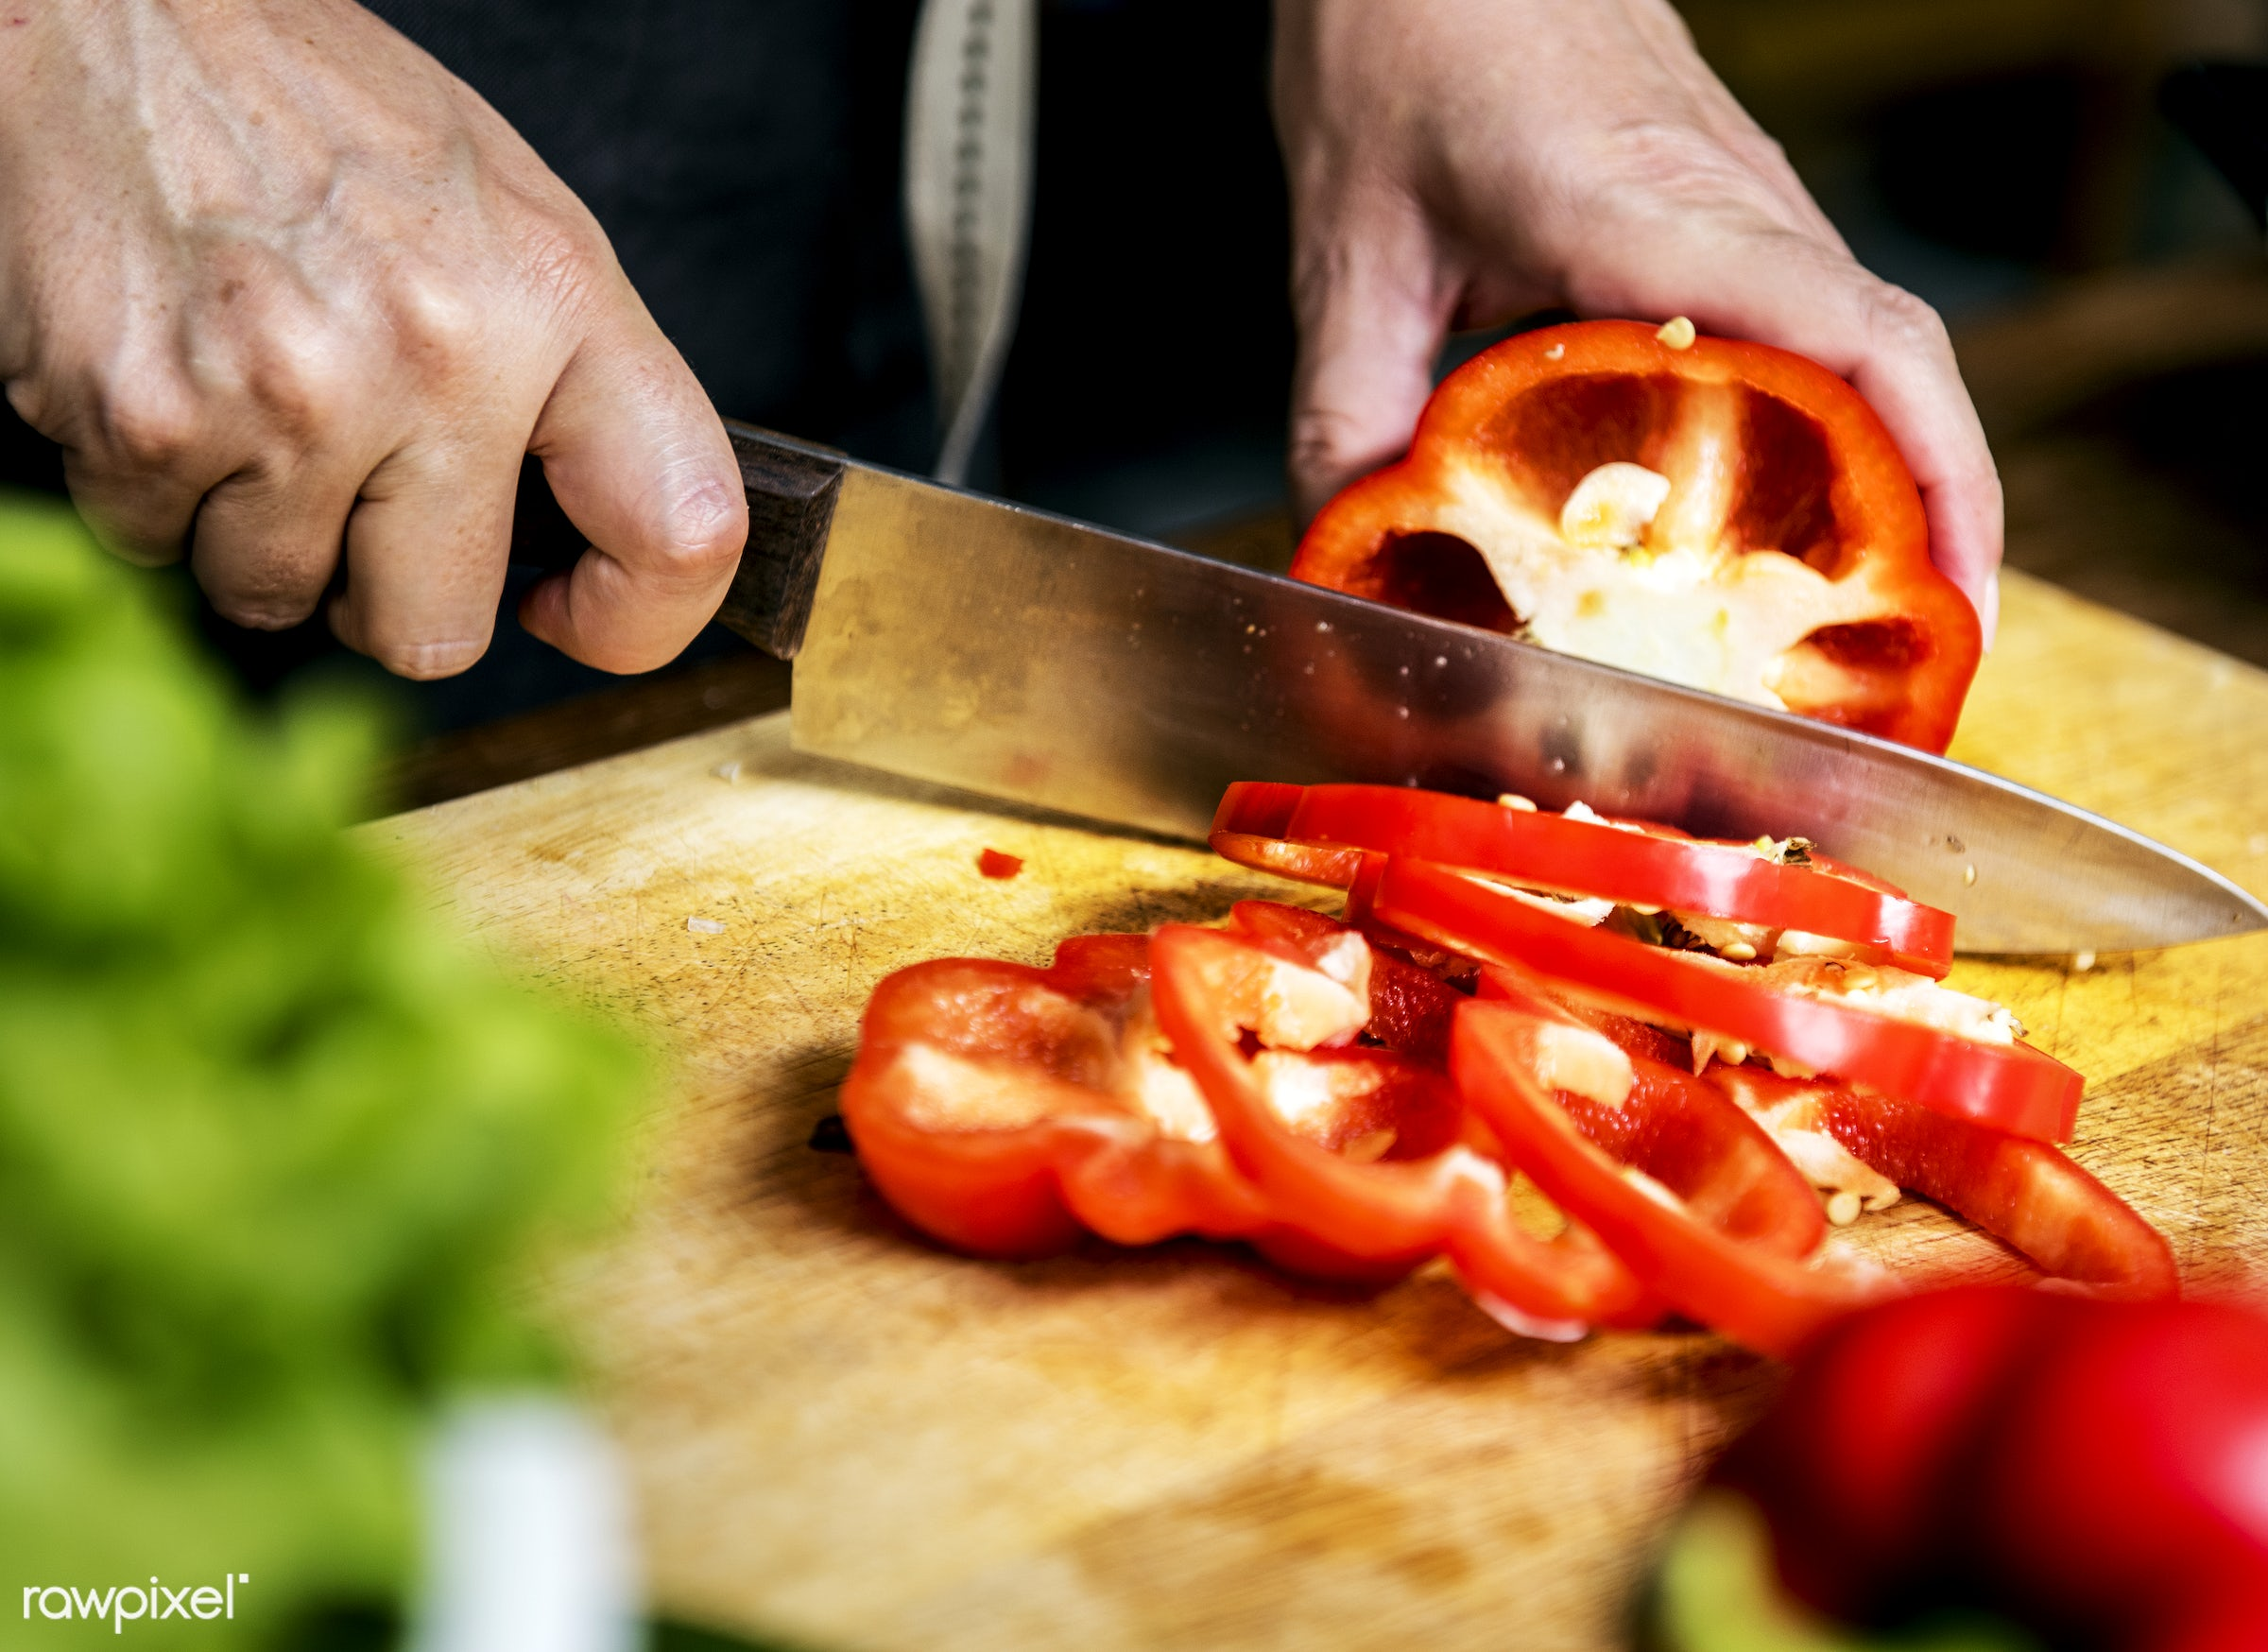 raw, diverse, chopping board, bell pepper, farm, ingredients, nature, farmer, fresh, hands, products, closeup, knife, cut...